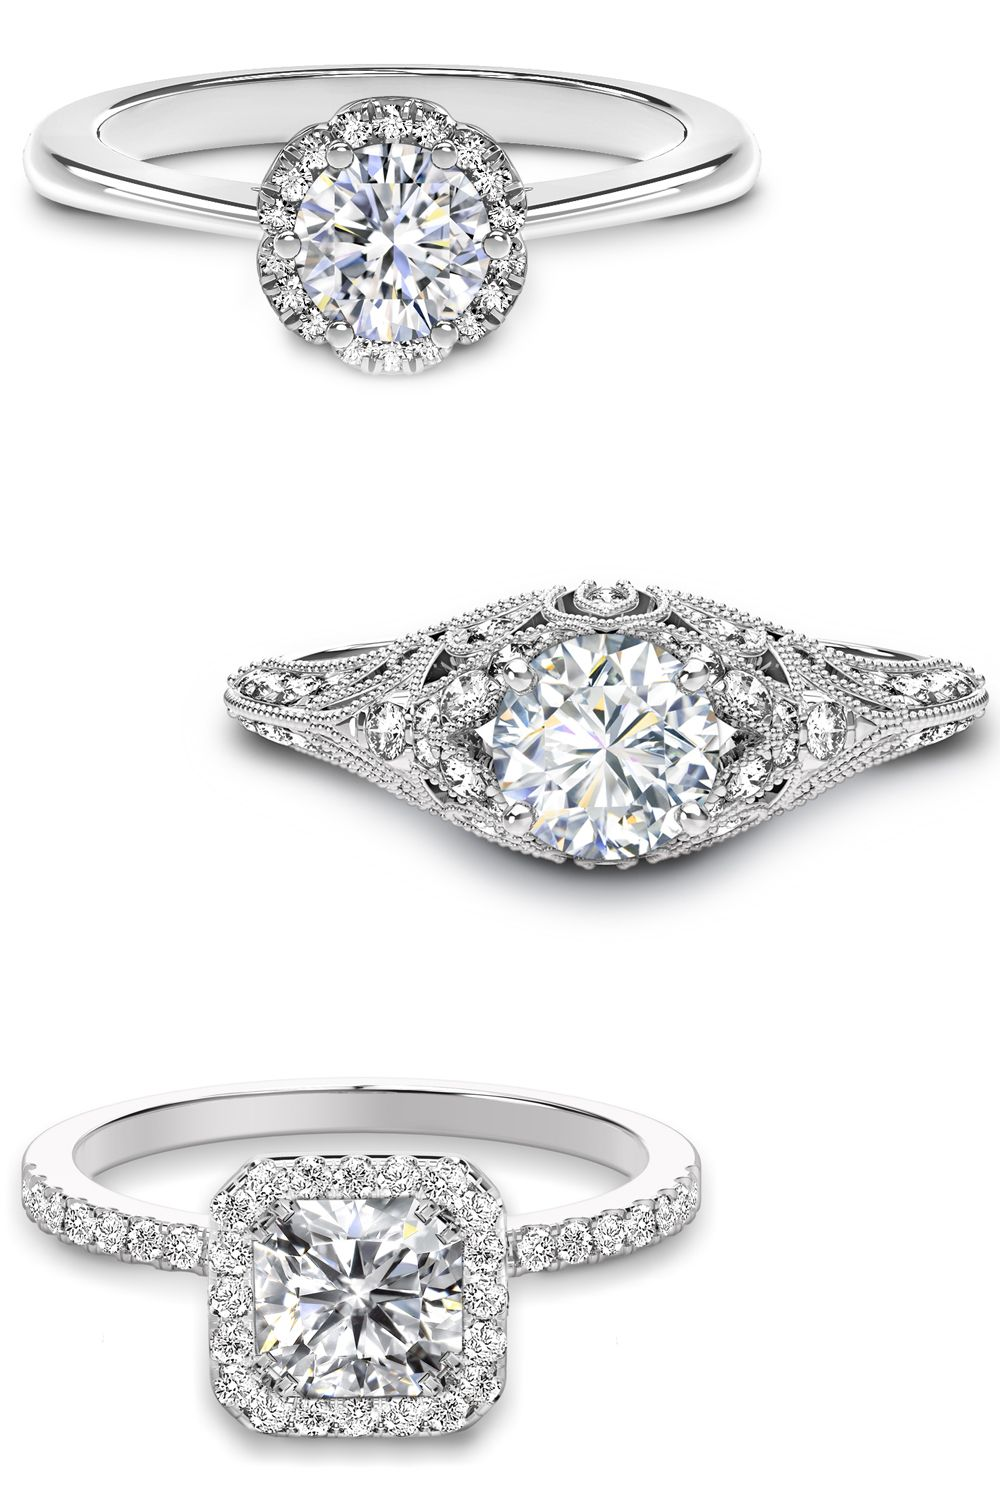 Engagement ring shopping tips everything you need to know about engagement ring shopping tips everything you need to know about shopping for an engagement ring malvernweather Gallery